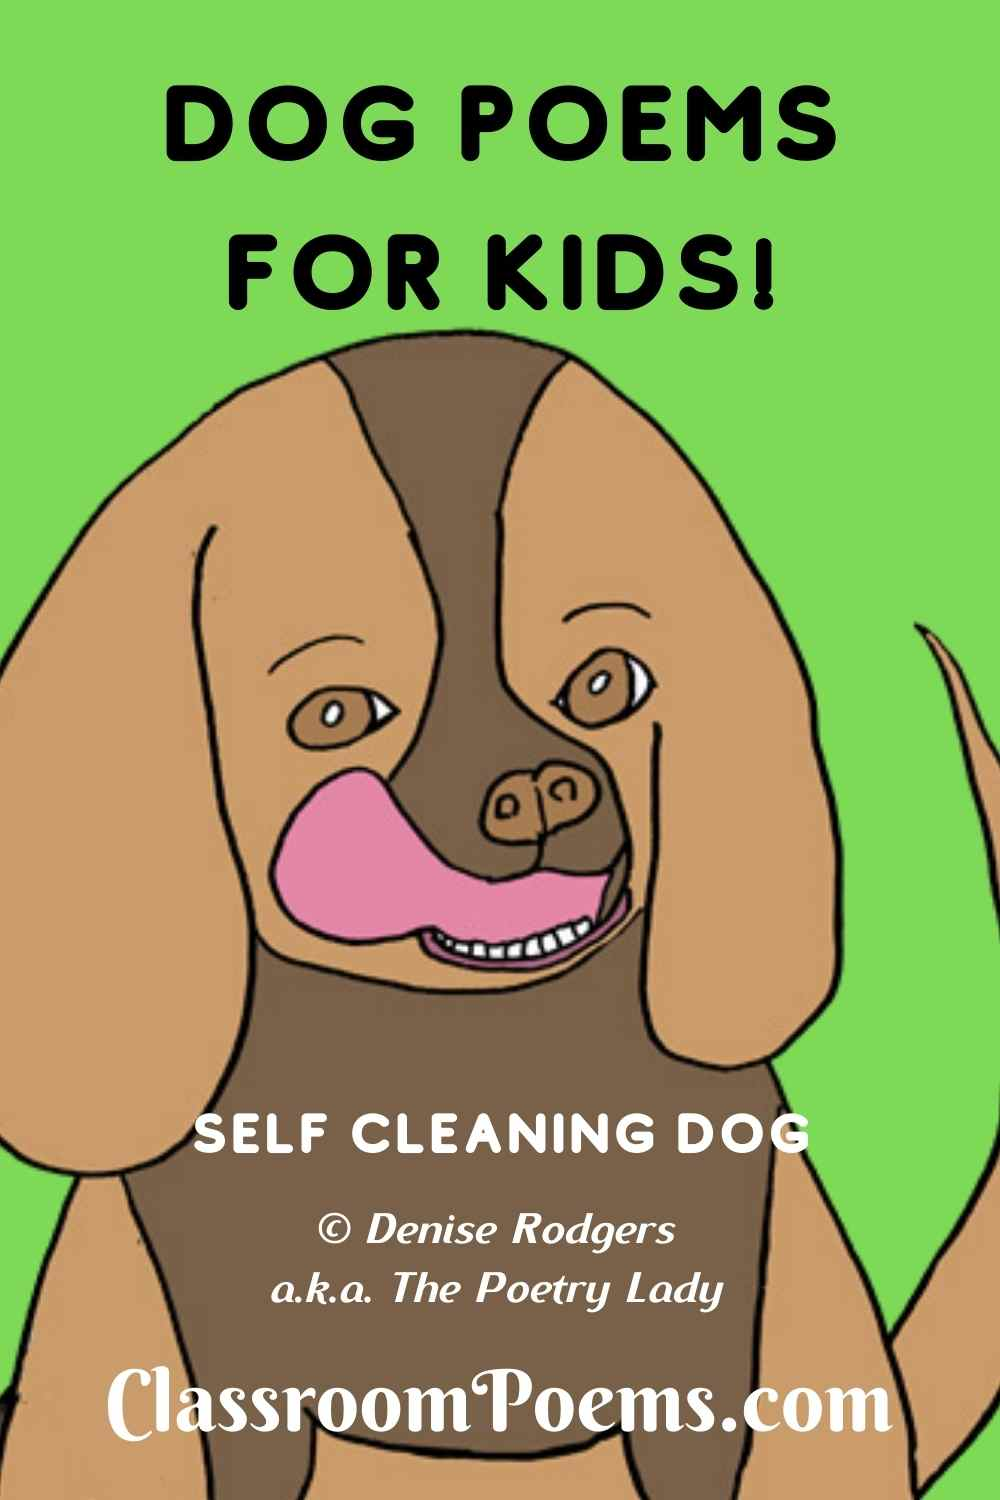 SELF-CLEANING DOG, a funny dog poem for kids by Poetry Lady Denise Rodgers on ClassroomPoems.com.